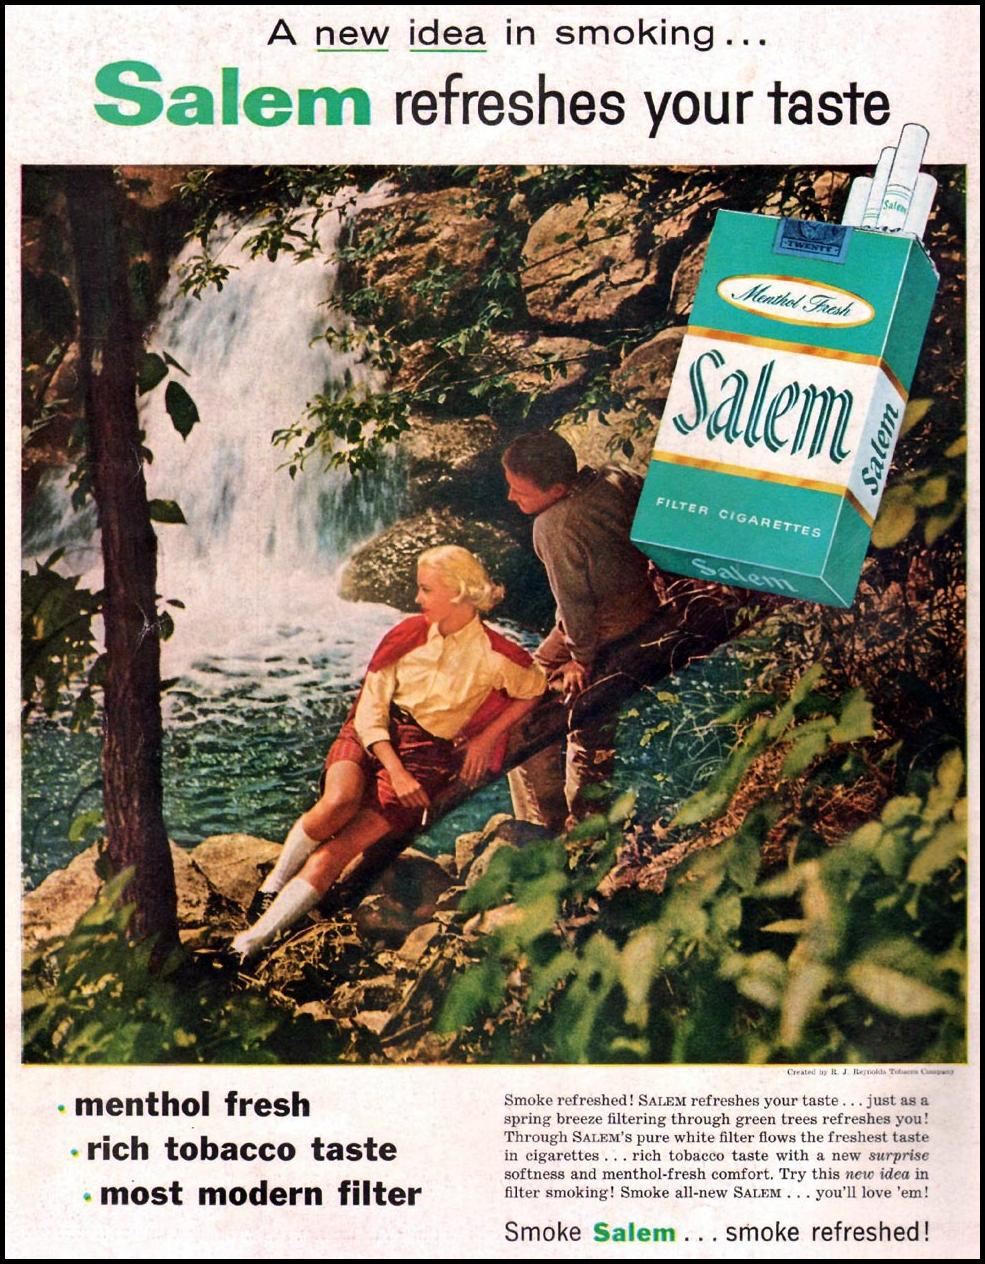 SALEM CIGARETTES LIFE 07/01/1957 BACK COVER